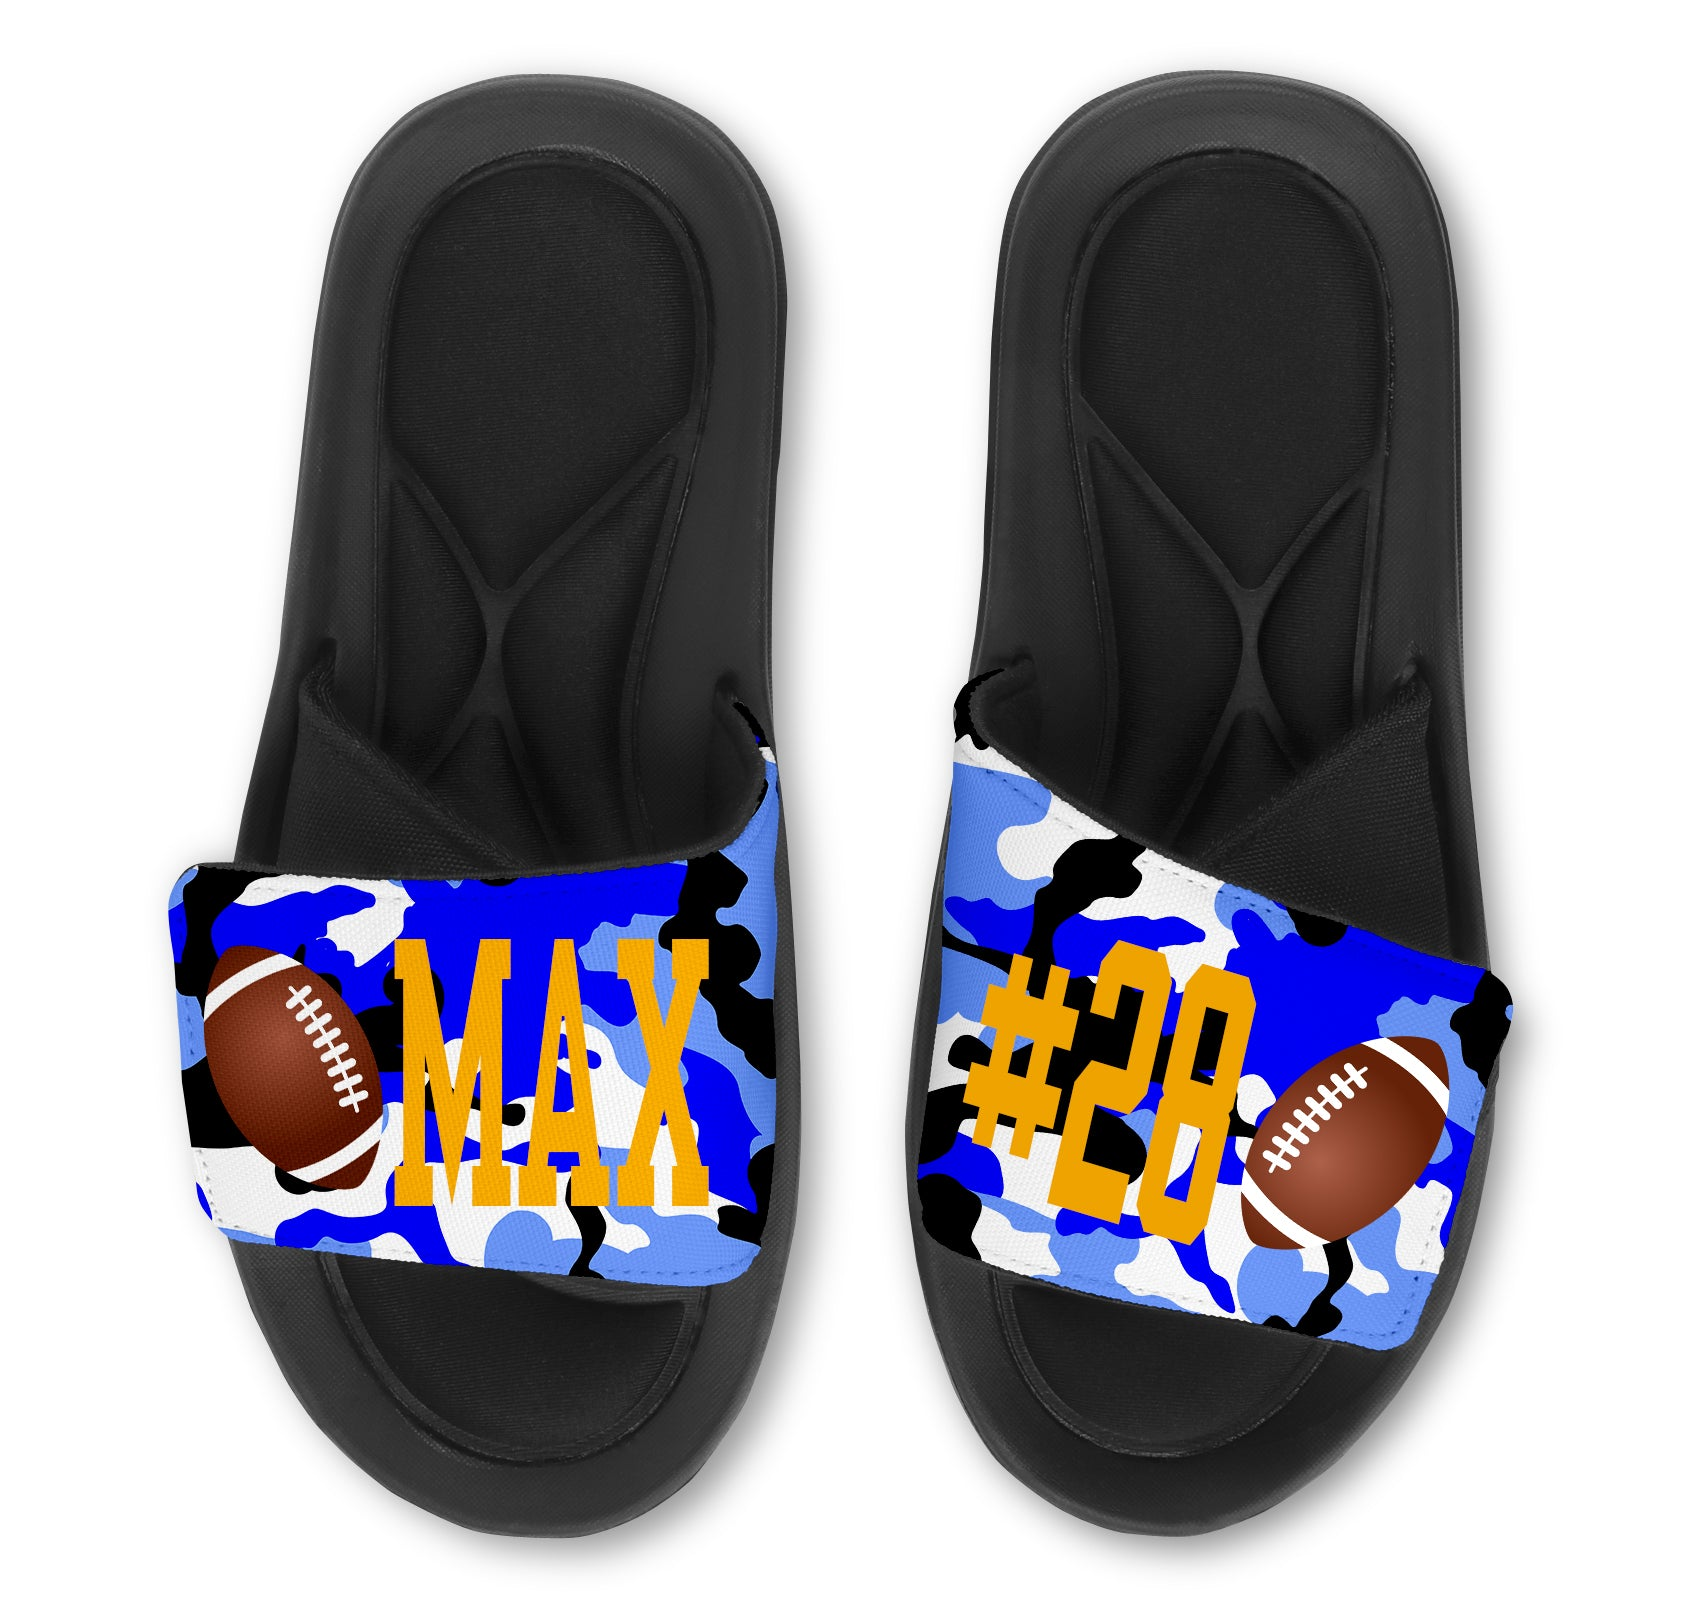 Football Custom Slides / Sandals - Camo